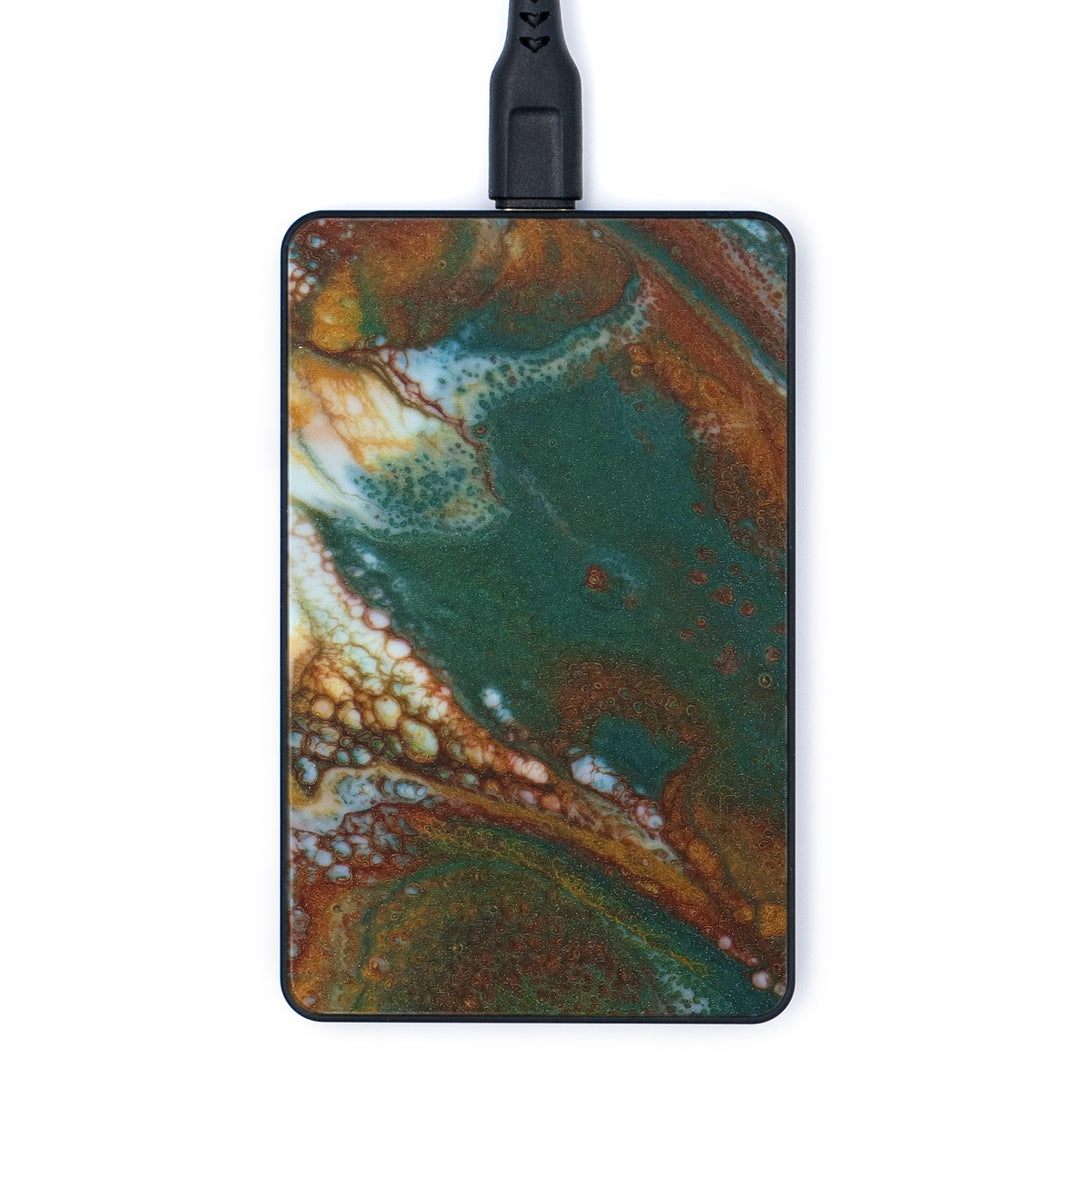 Thin ResinArt Wireless Charger - Violet (Teal & Gold, 347717)